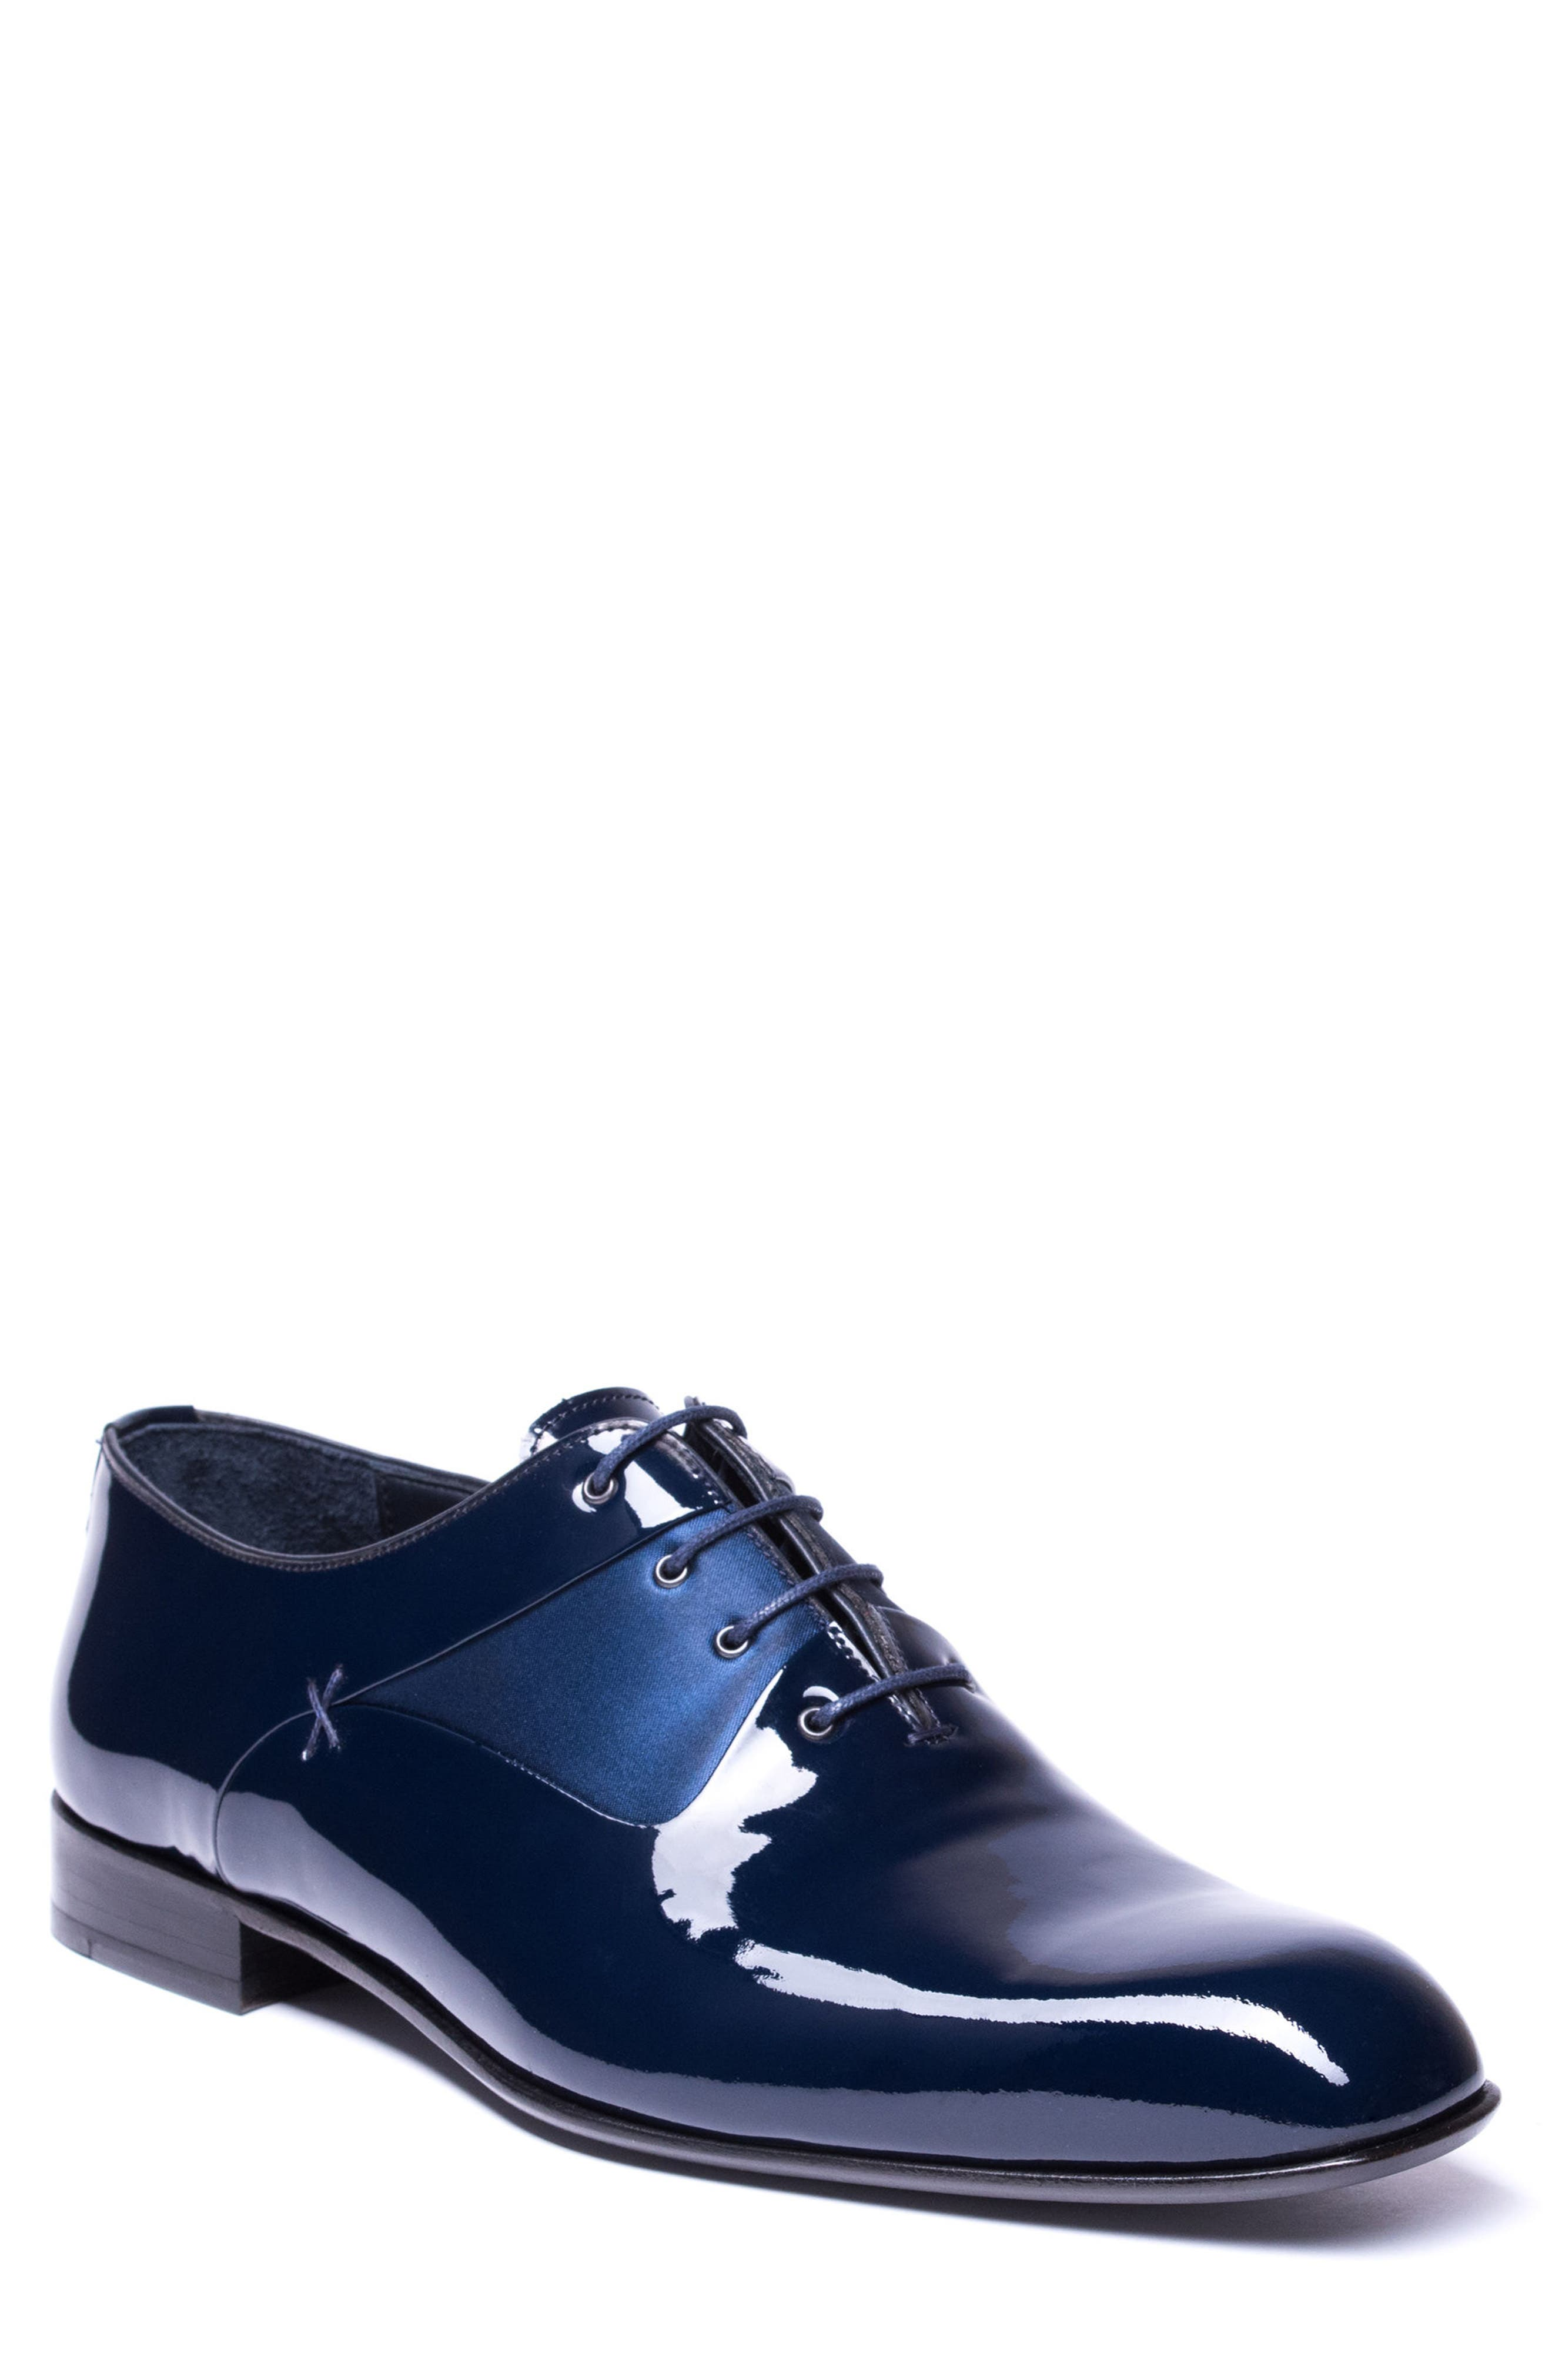 Jared Lang Matteo Plain Toe Oxford (Men)